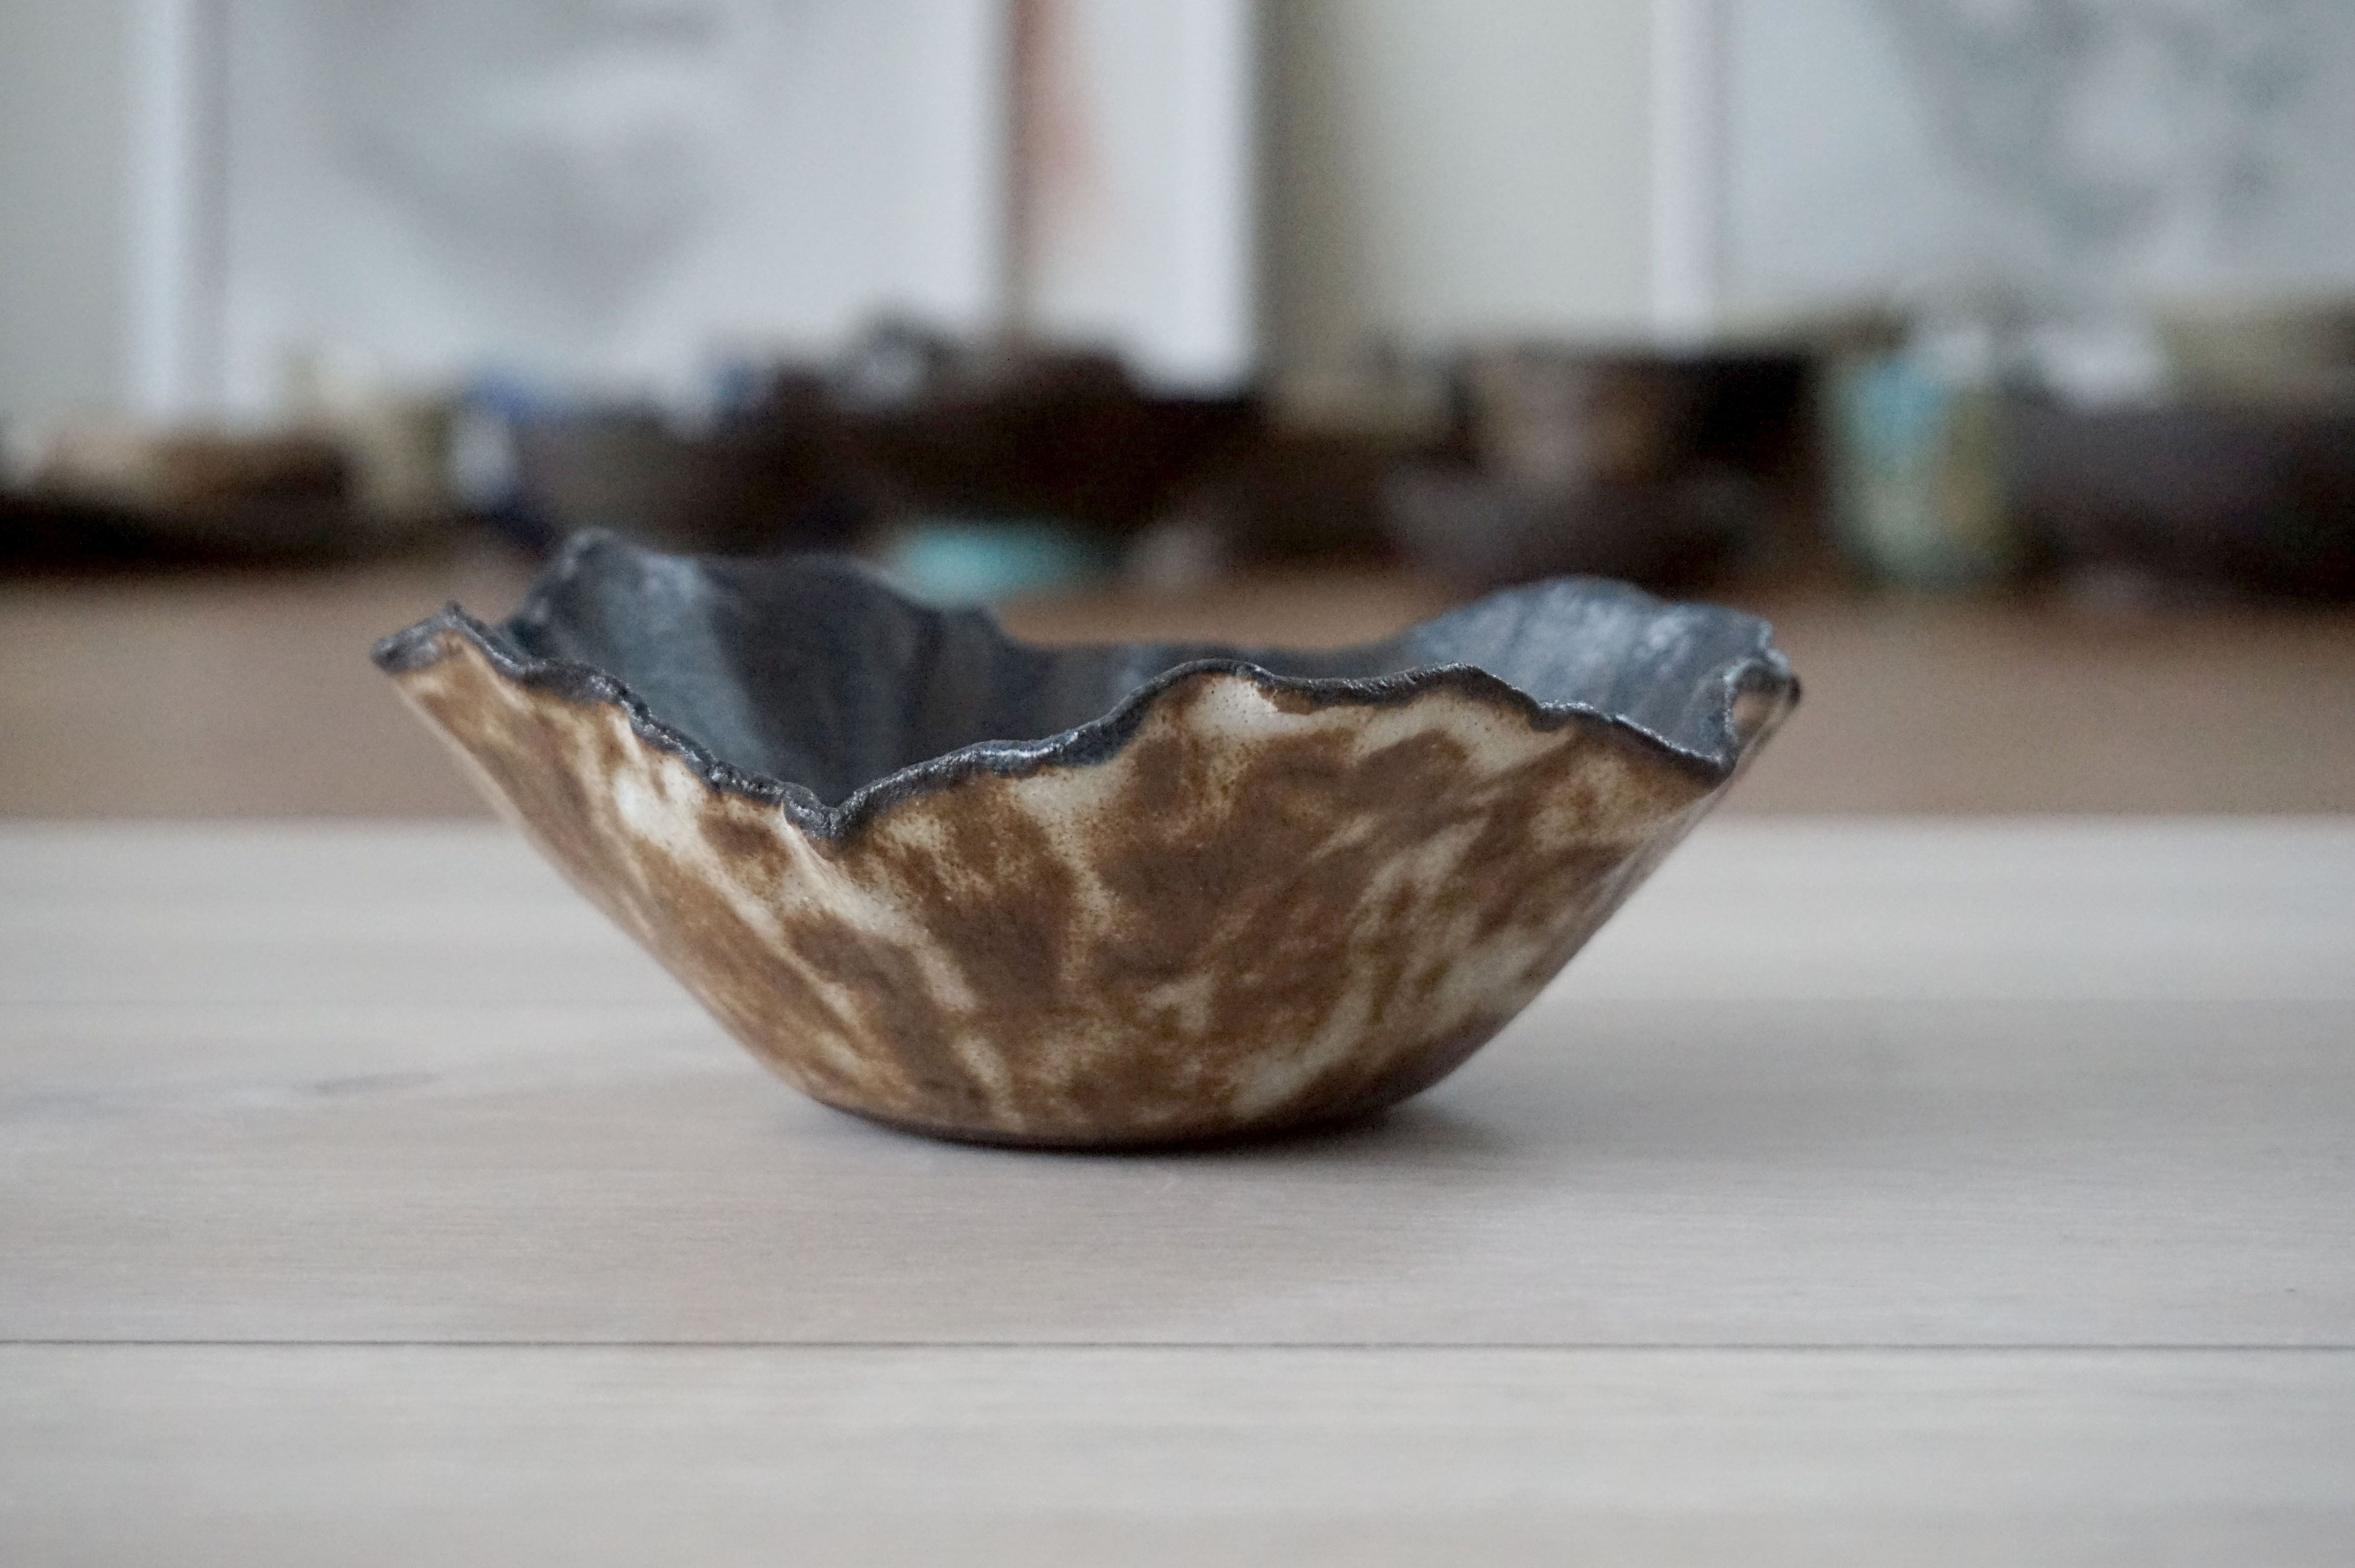 TaKo - small serving bowl - for sweets, nuts or berries :) Stoneware black clay + glazes